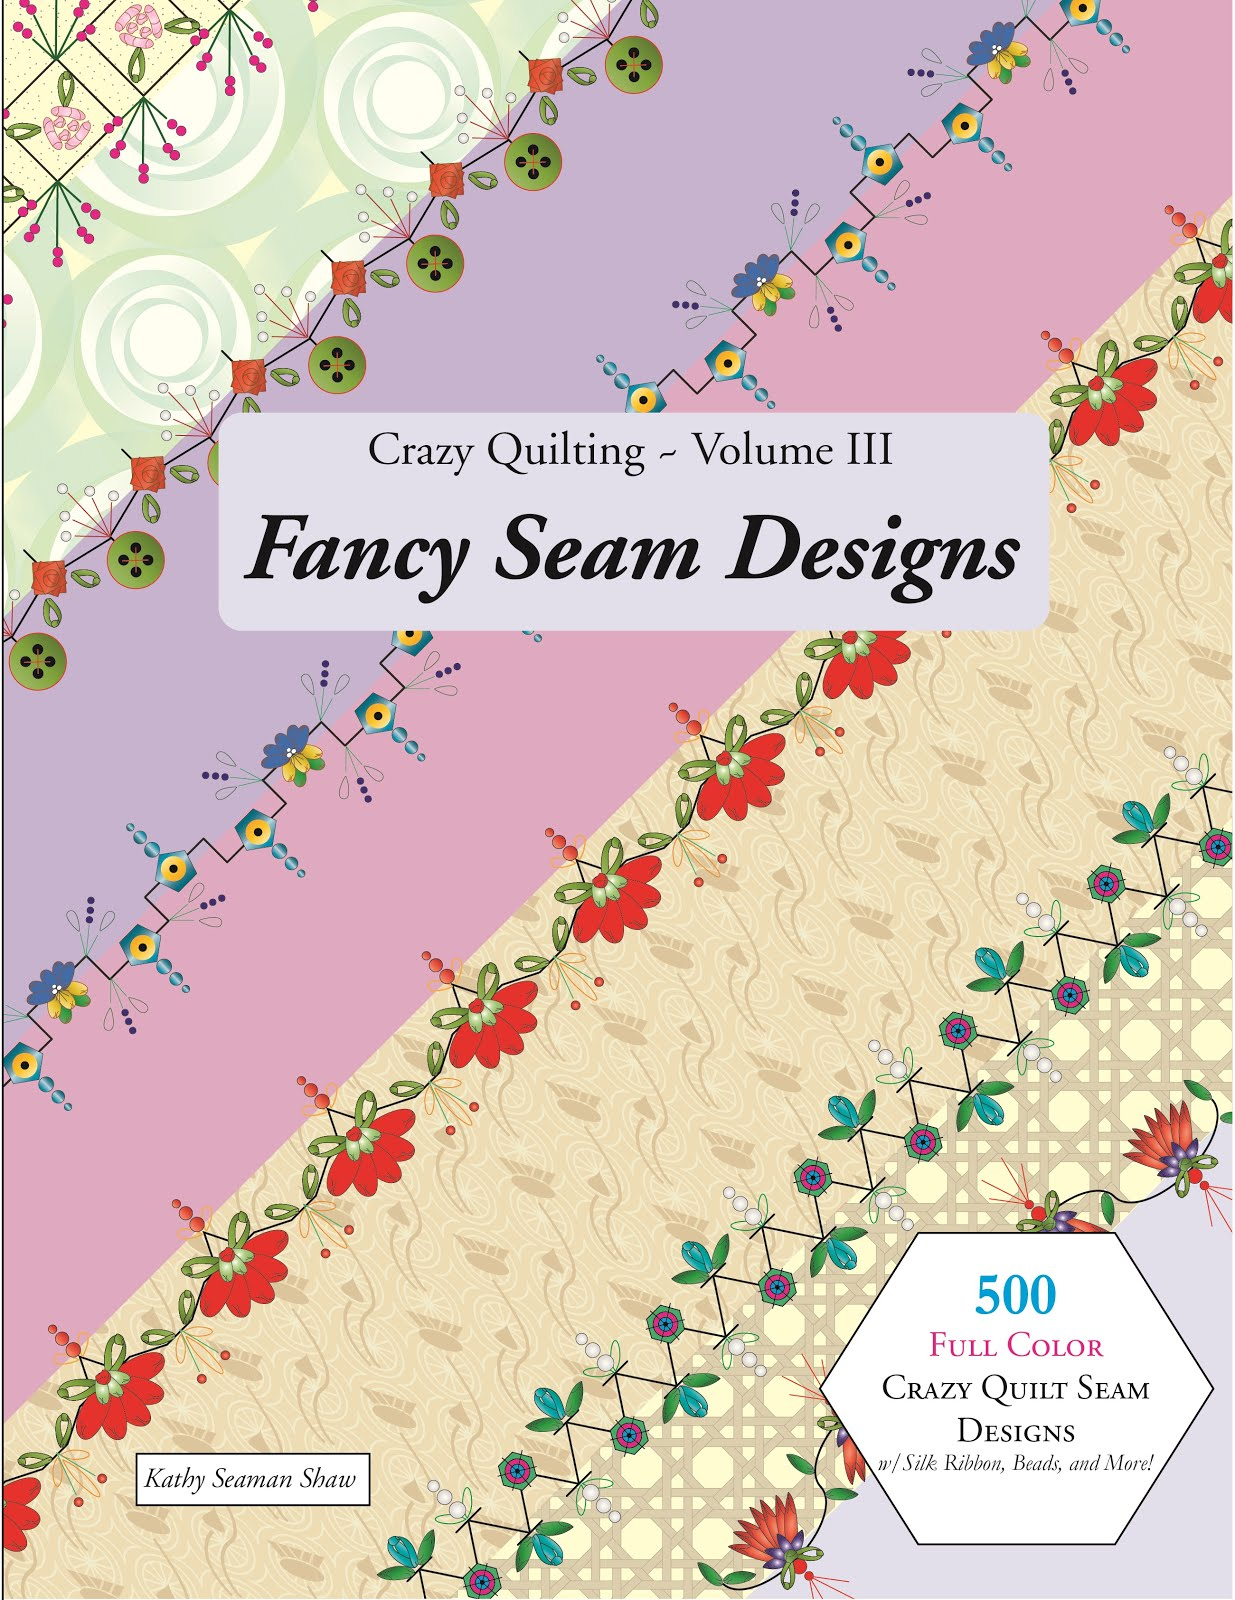 My Friend Kathy Shaw's Crazy Quilting Volume 3 Fancy Seam Designs Book